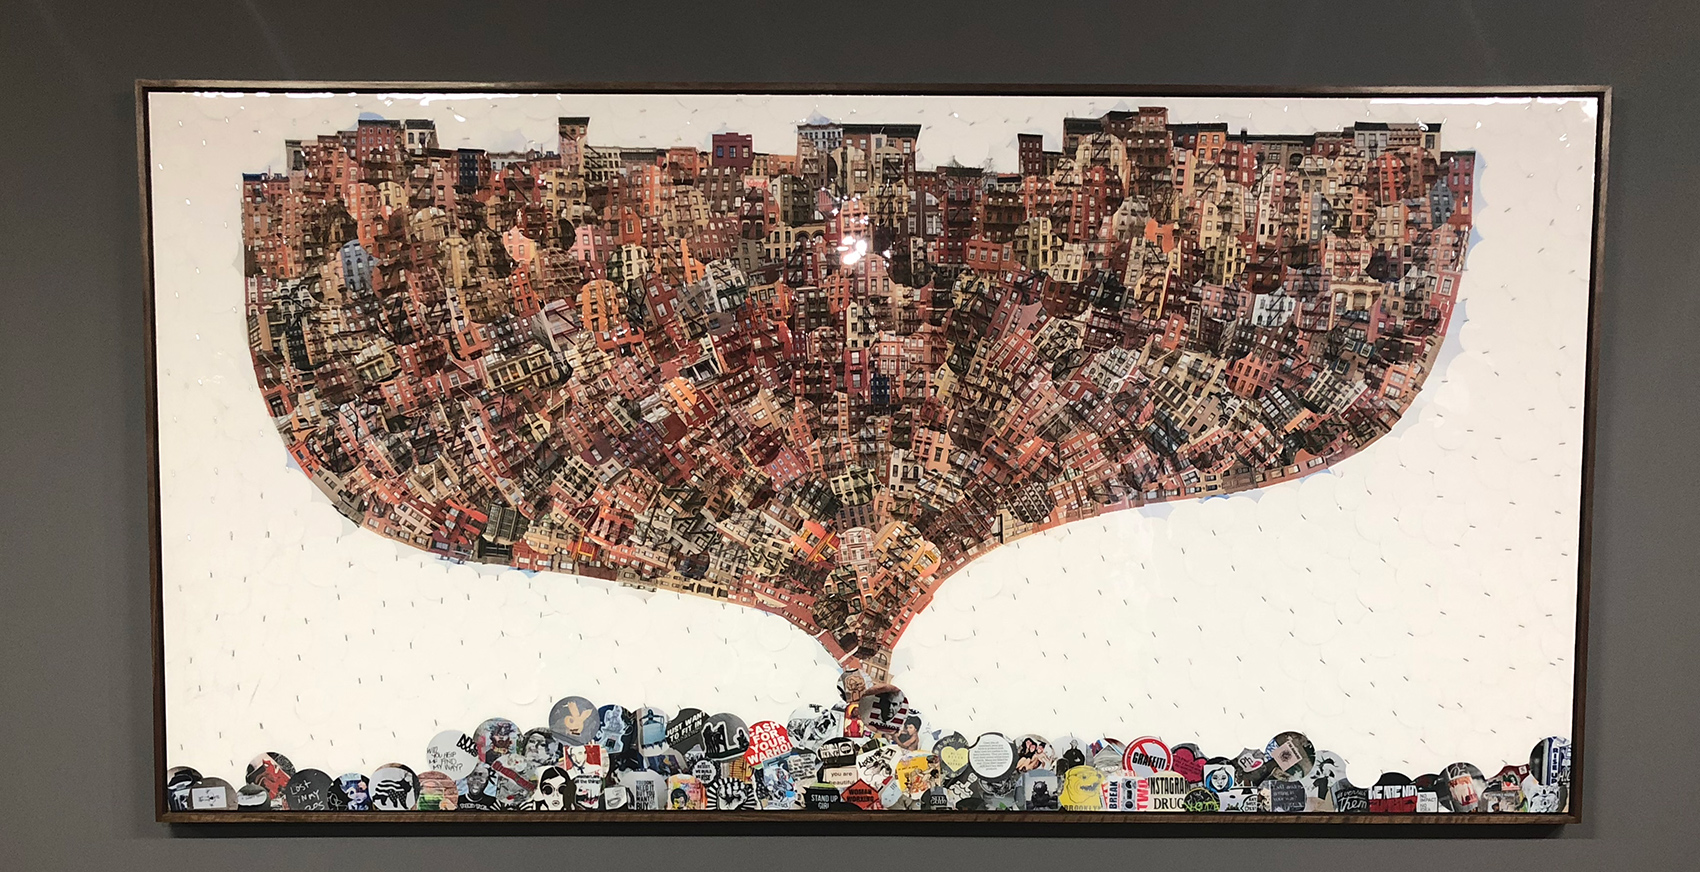 METROPOLIS. Unique. New York City. 2019. Laminated archival dye-sublimation photographs, cropped circularly, hand-mounted.   UV-resistant polymer resin surface. Birch plywood substrate is reinforced with aluminum tubing. Framed with offset 2 inch walnut. 96 x 48 x 3 inches.